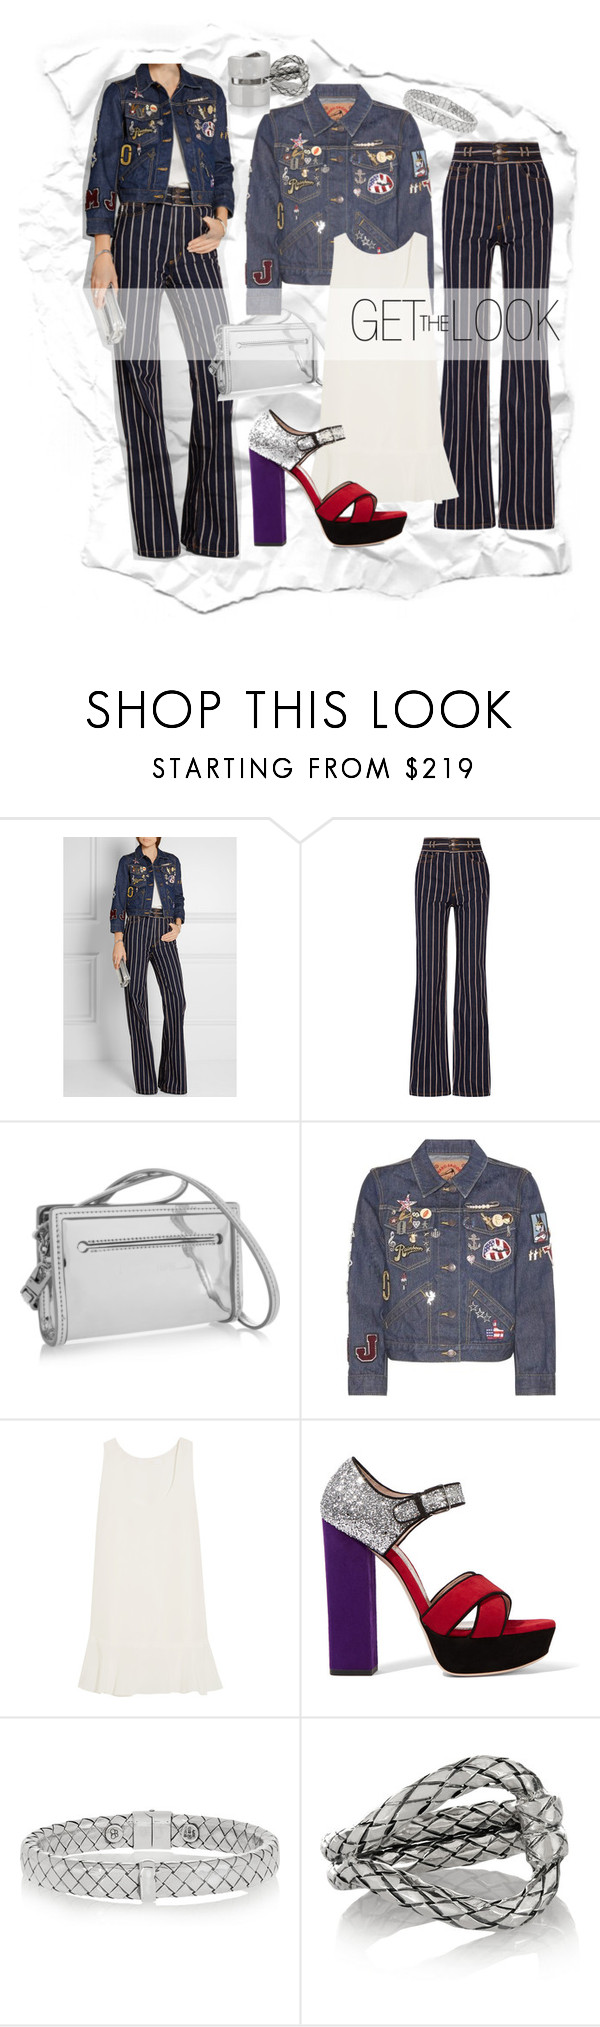 """net-a-porter"" by alinnas ❤ liked on Polyvore featuring Marc Jacobs, McQ by Alexander McQueen, Chloé, Miu Miu, Bottega Veneta and Jennifer Fisher"